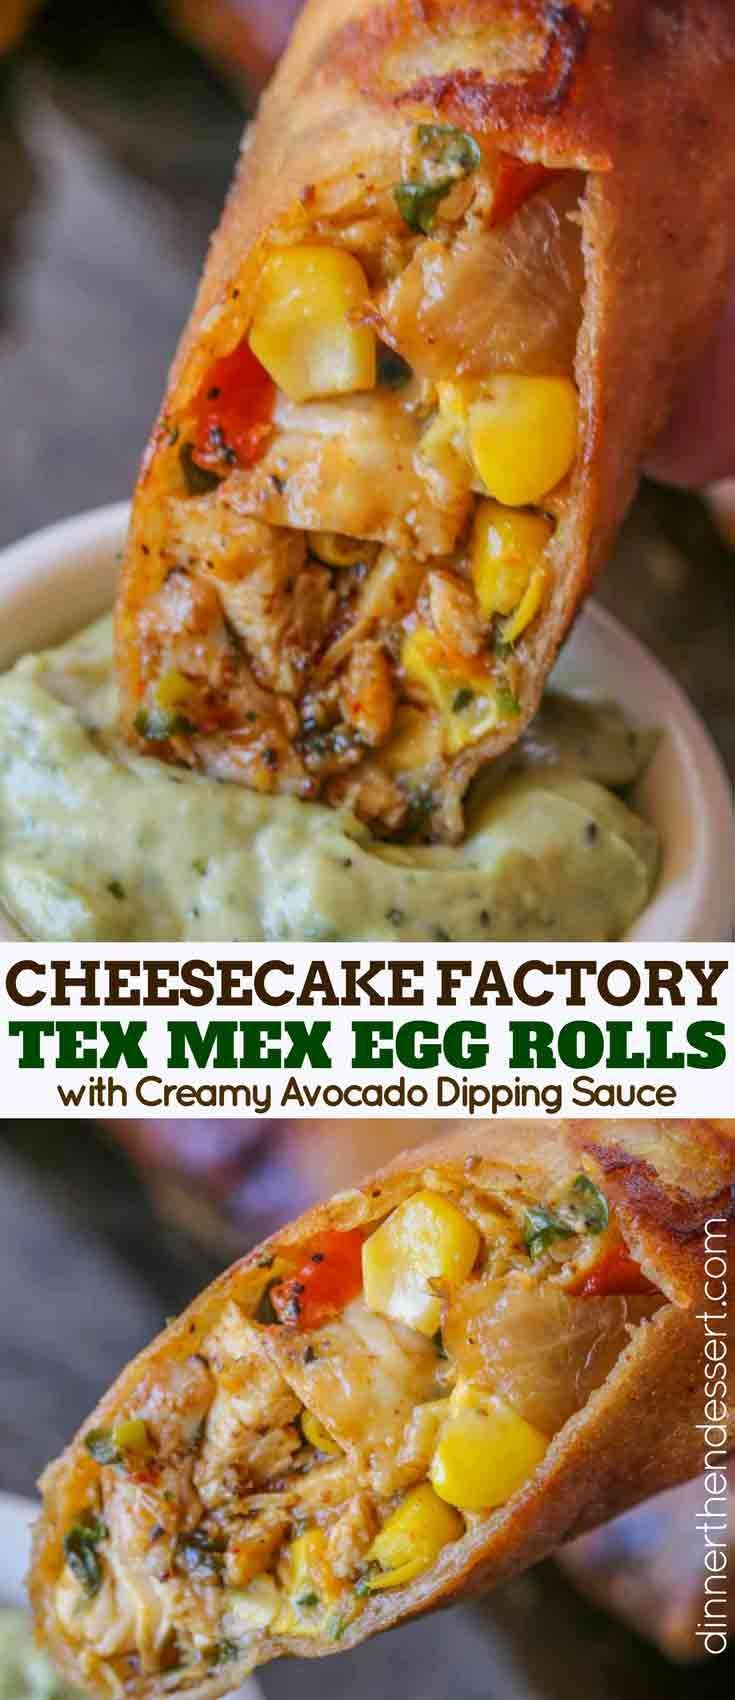 Cheesecake Factory Tex Mex Egg Rolls Copycat made with spiced chicken, beans, corn, bell peppers, onions, garlic, cilantro and cheddar cheese in a crispy egg roll with creamy avocado cilantro dipping sauce.